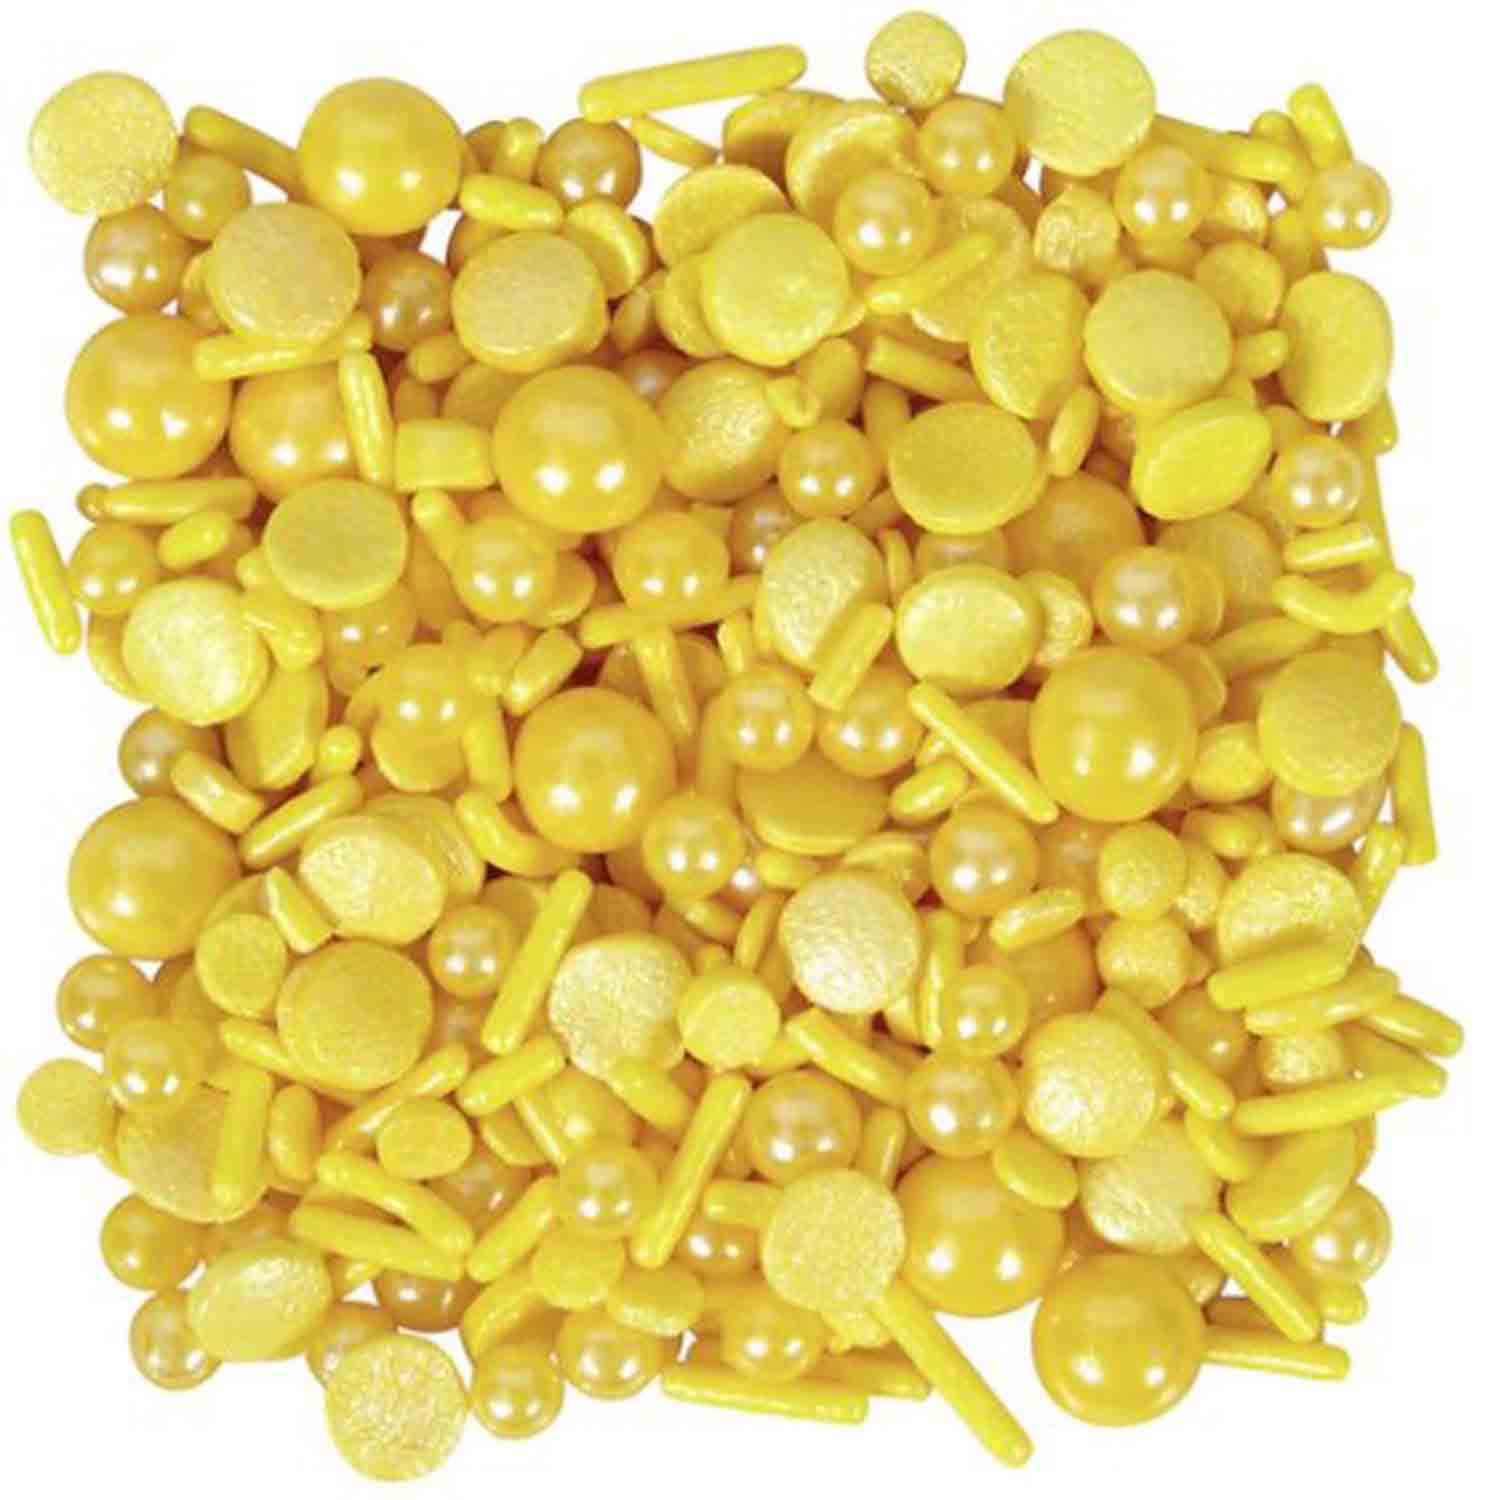 Yellow Sprinkle Mix